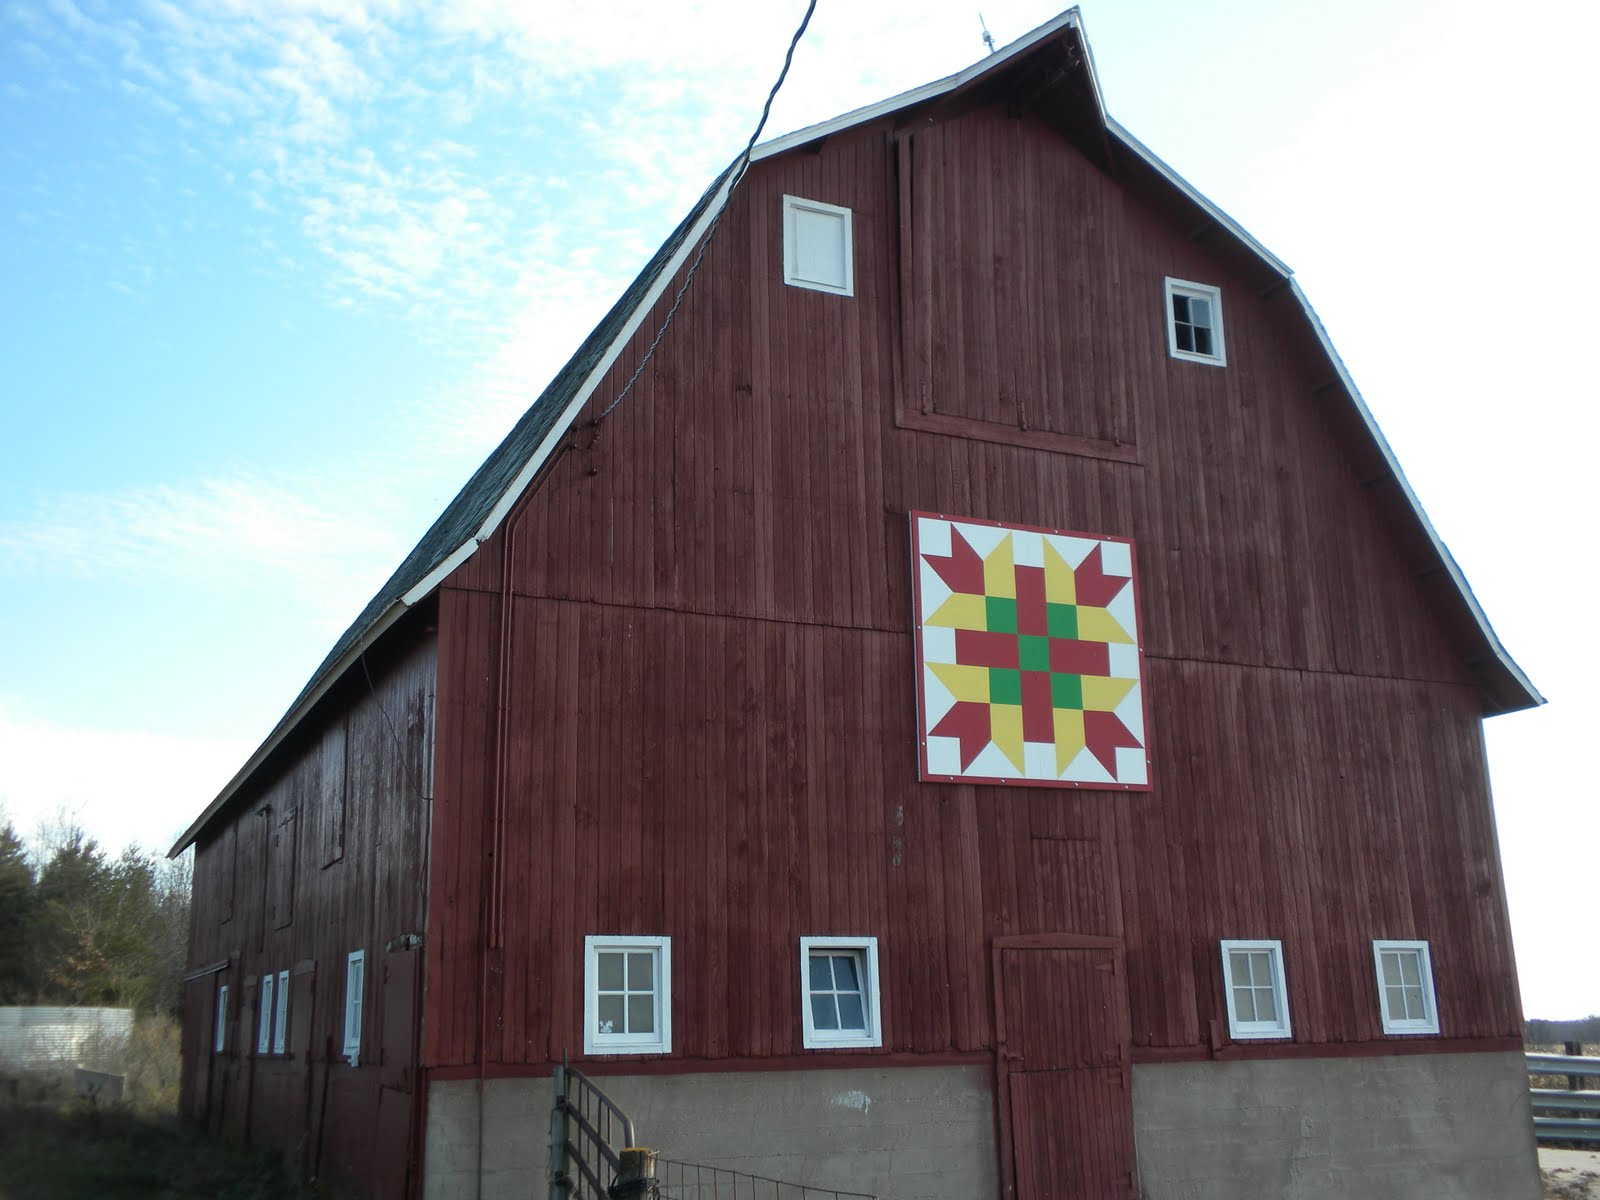 Barn Quilt Ideas Joy Studio Design Gallery - Best Design